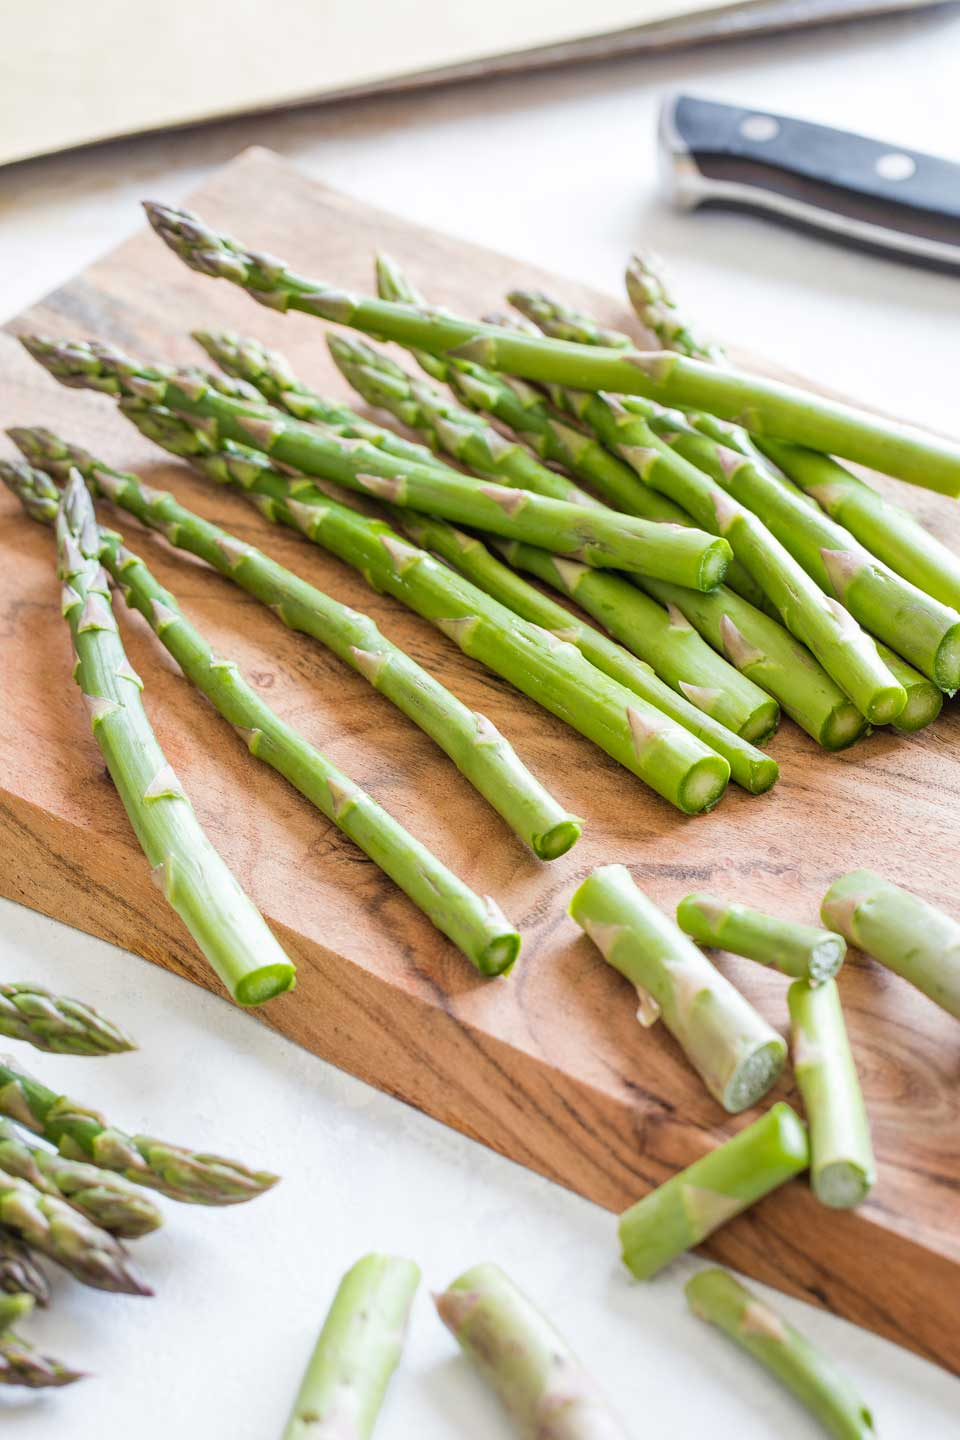 Asparagus spears on a cutting board, with the bottom inch or two of their stems just cut off.